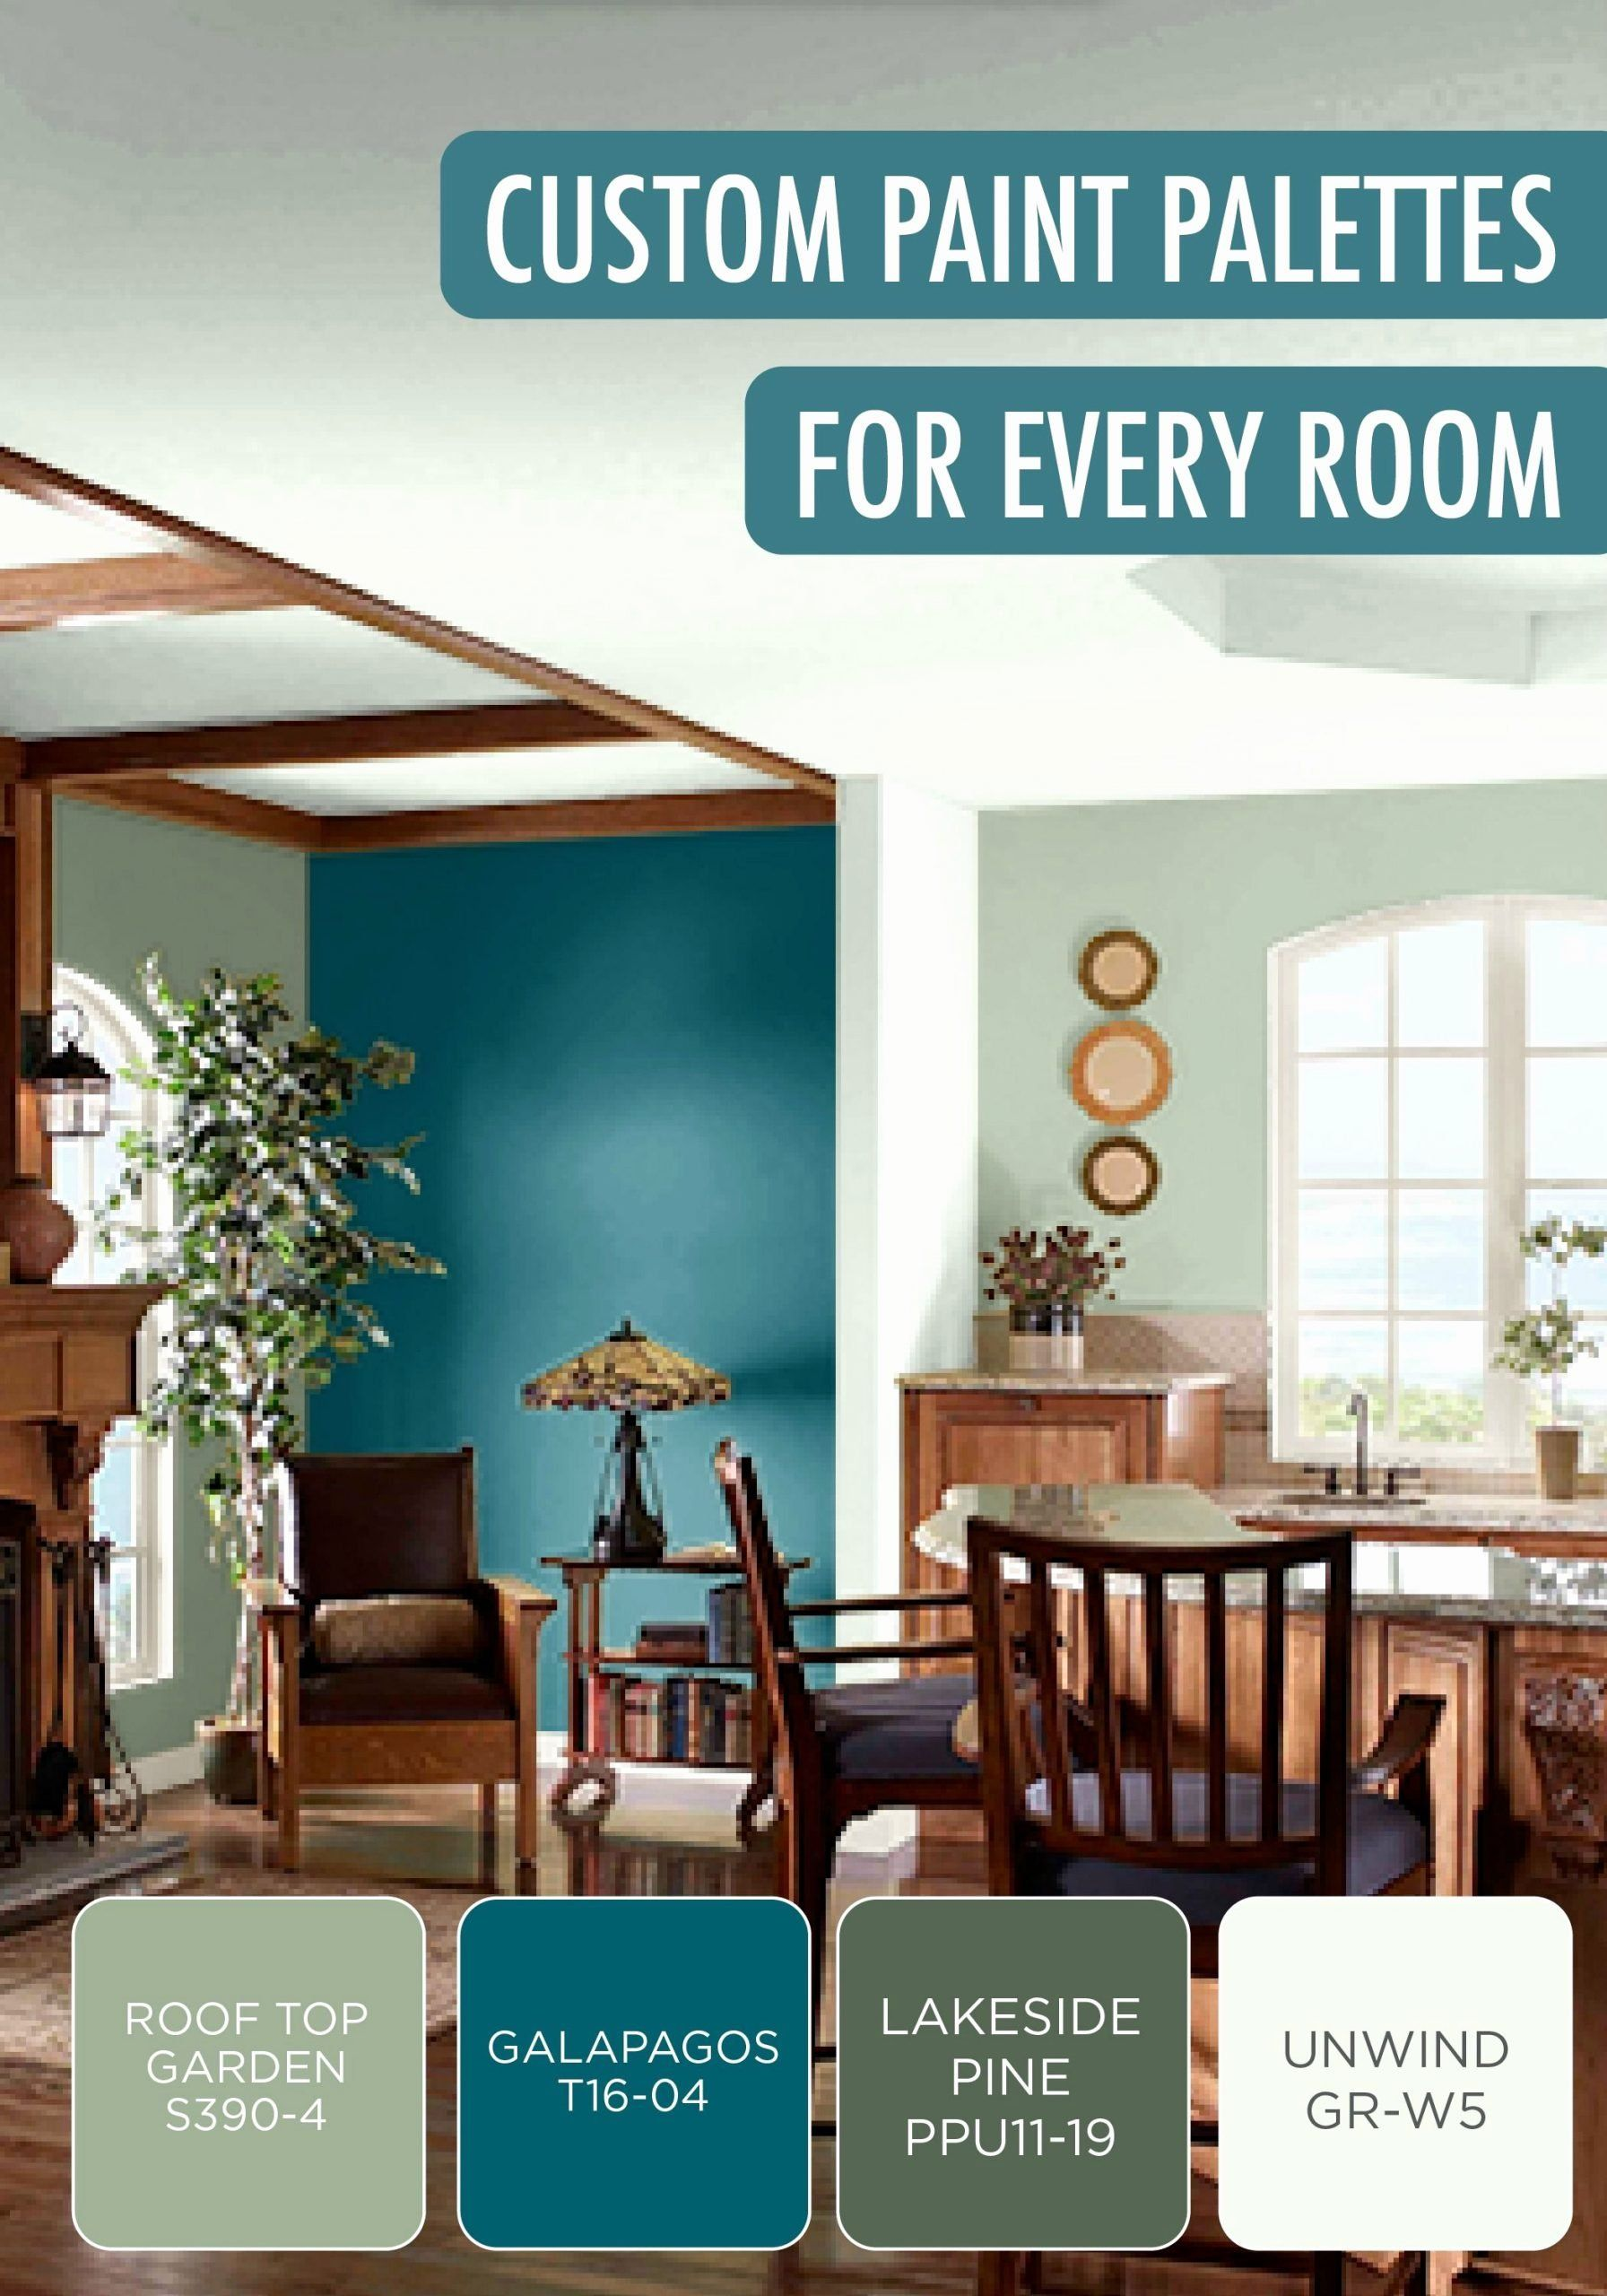 Behr Paint Colors Interior Living Room Best Of Sometimes Finding The Perfect Shade To Coat Th In 2020 Teal Living Room Decor Green Walls Living Room Living Room Colors